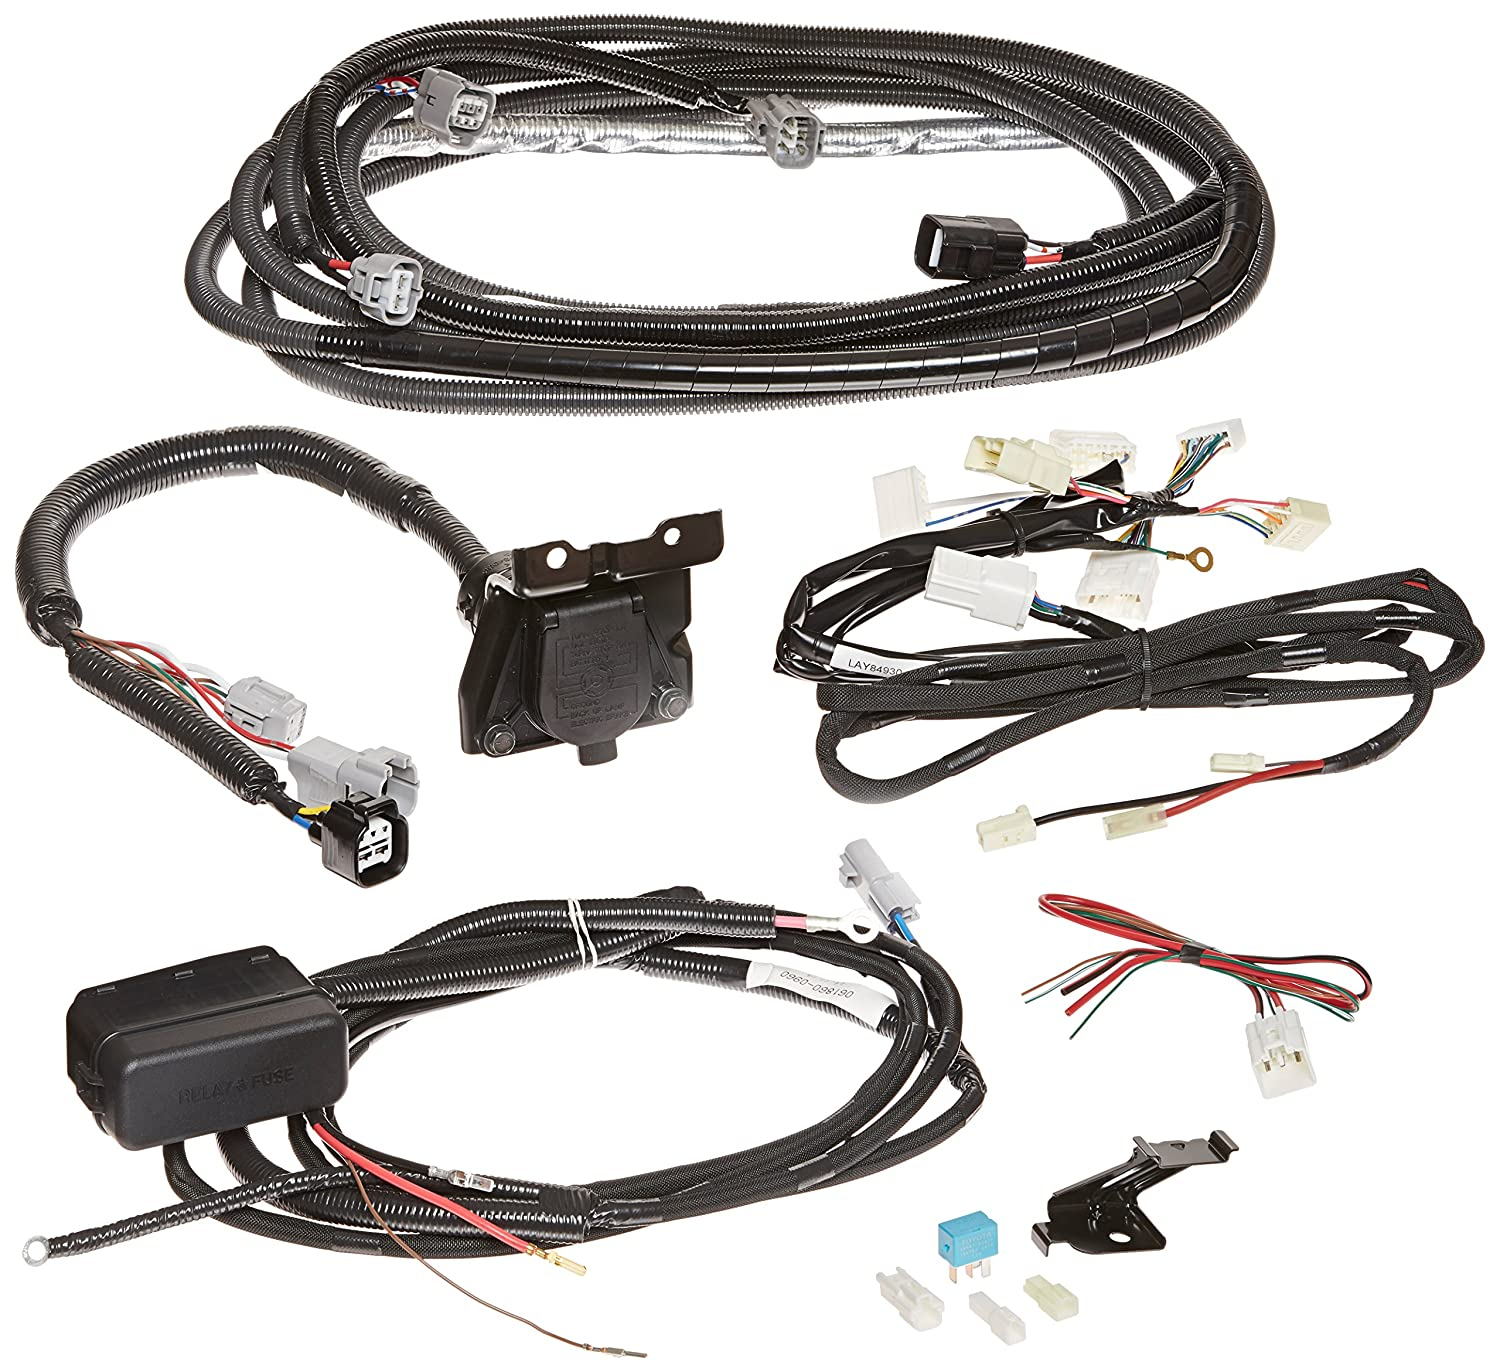 Toyota Genuine Accessories Pt725 34110 Towing Wiring Harness Automotive